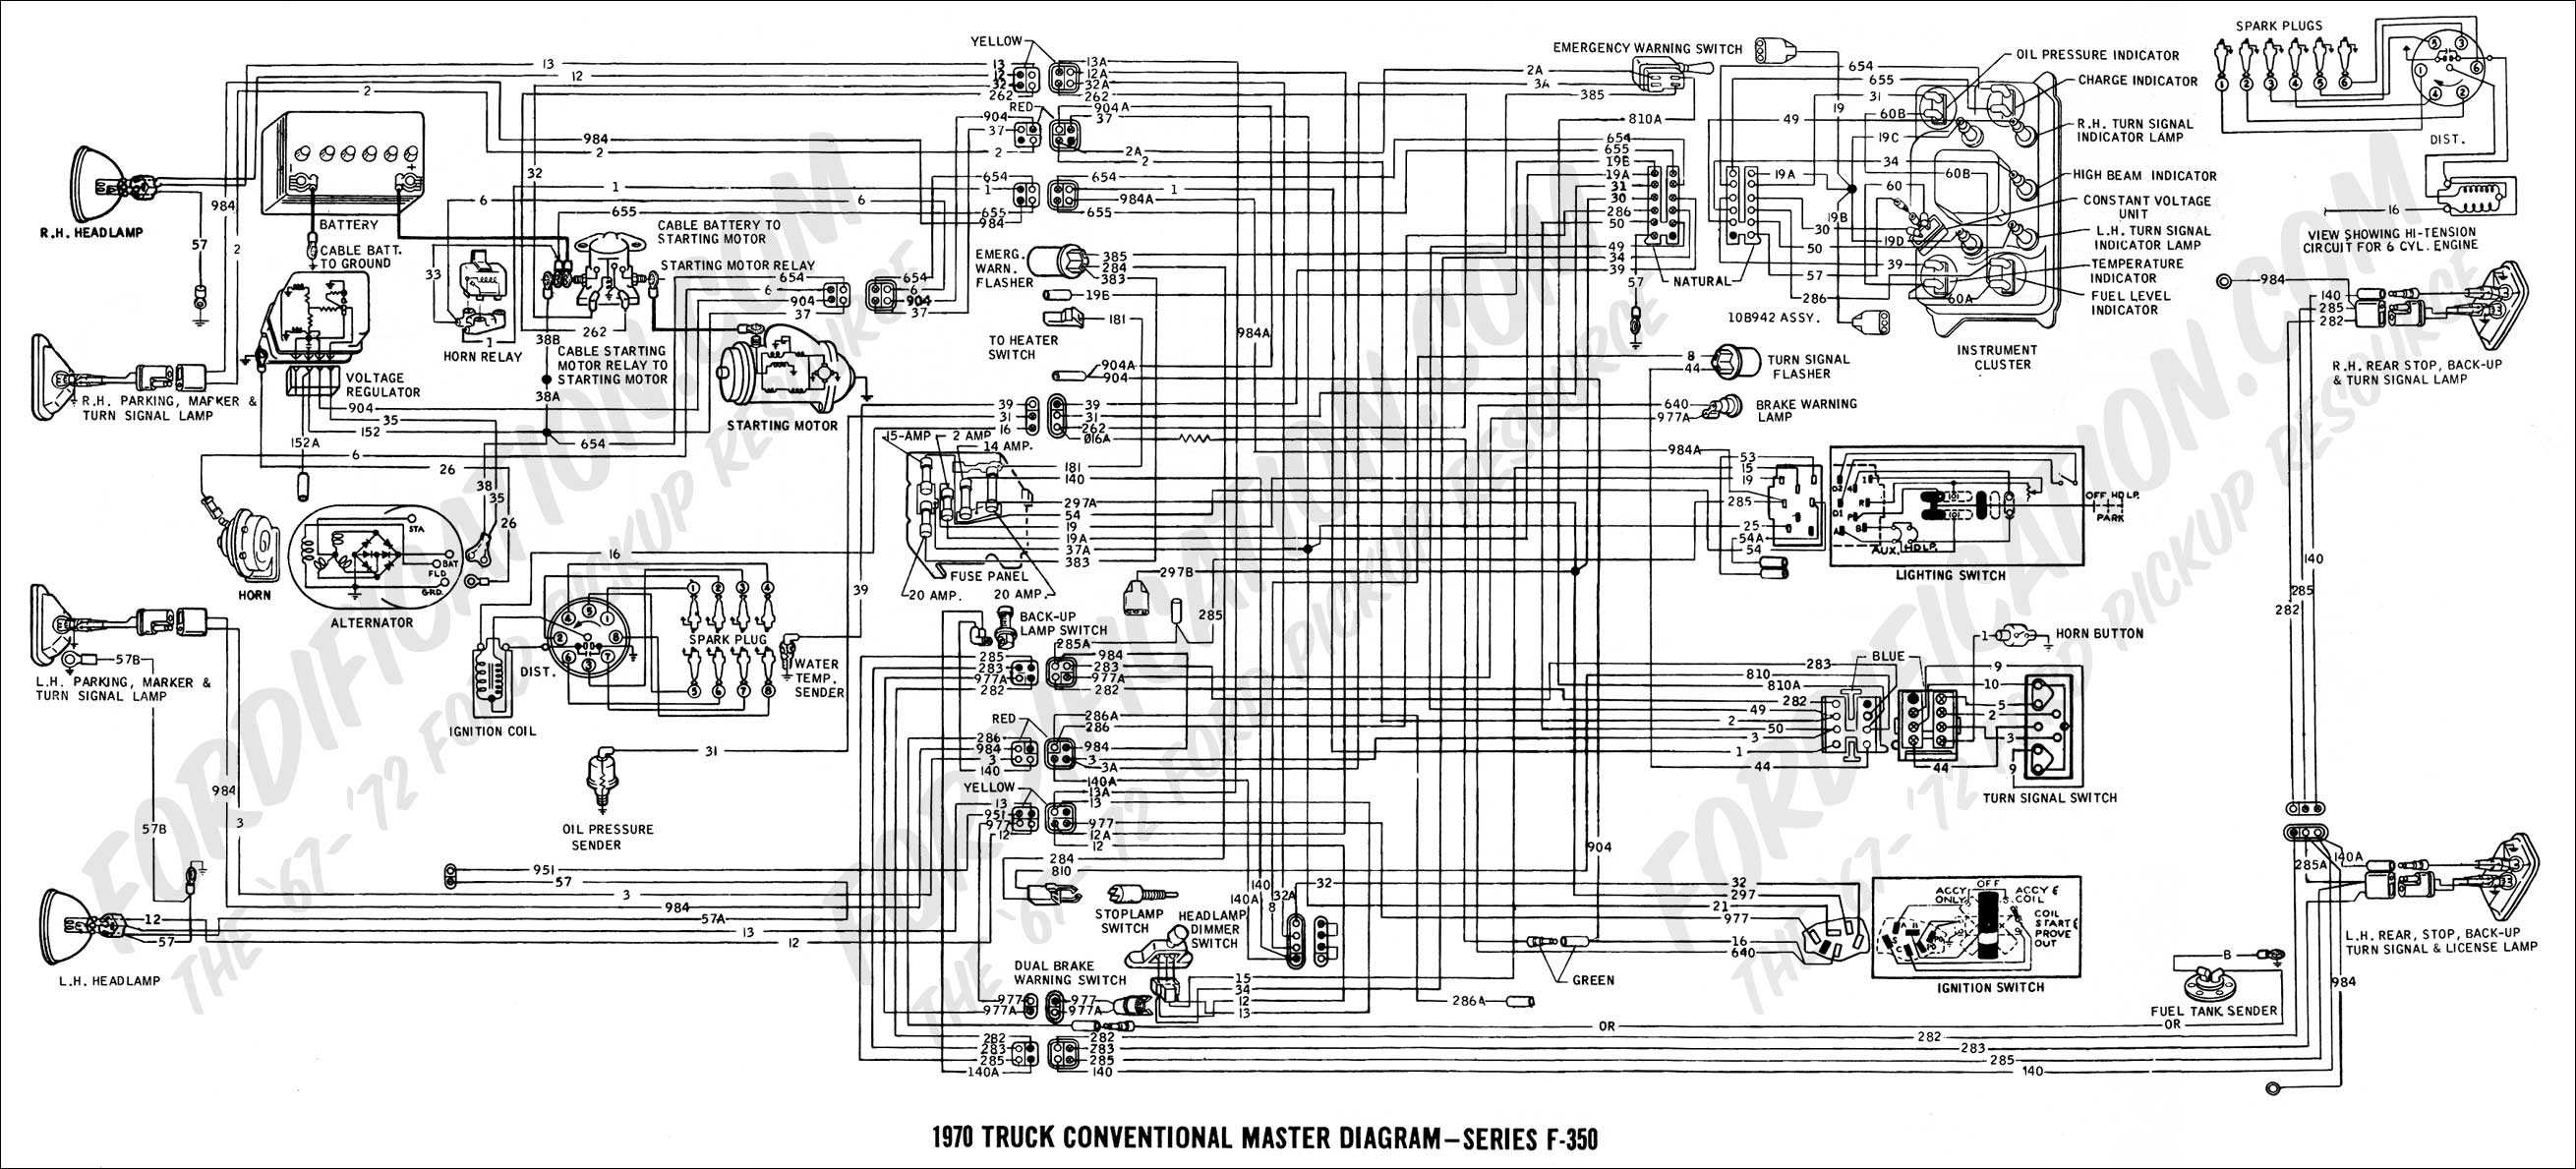 1999 ford F250 Tail Light Wiring Diagram 2001 ford F350 Wiring Diagram Wiring Diagram Schematic Of 1999 ford F250 Tail Light Wiring Diagram